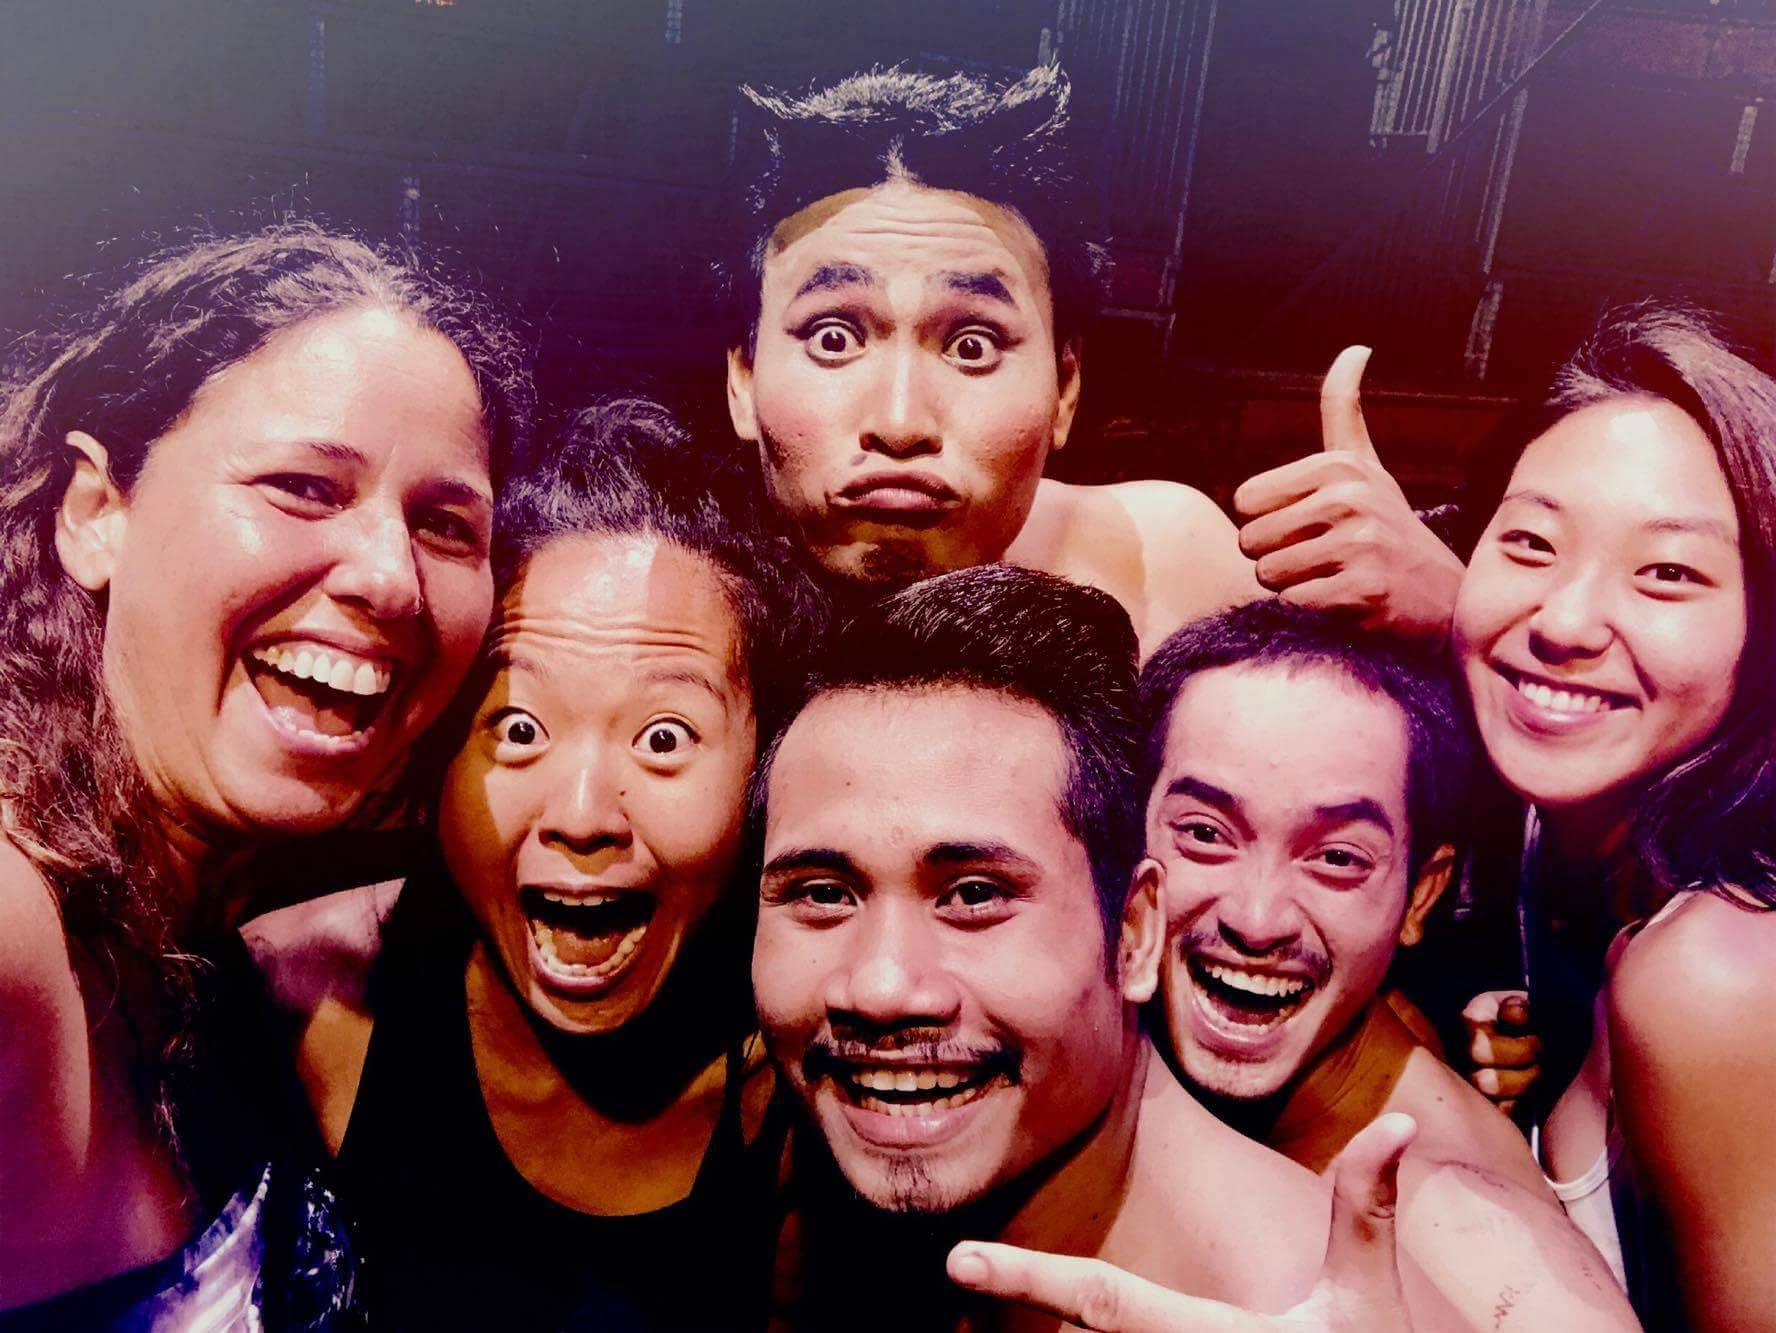 Mandatory group selfie with the performers of Phare Circus. I was a little too excited :)